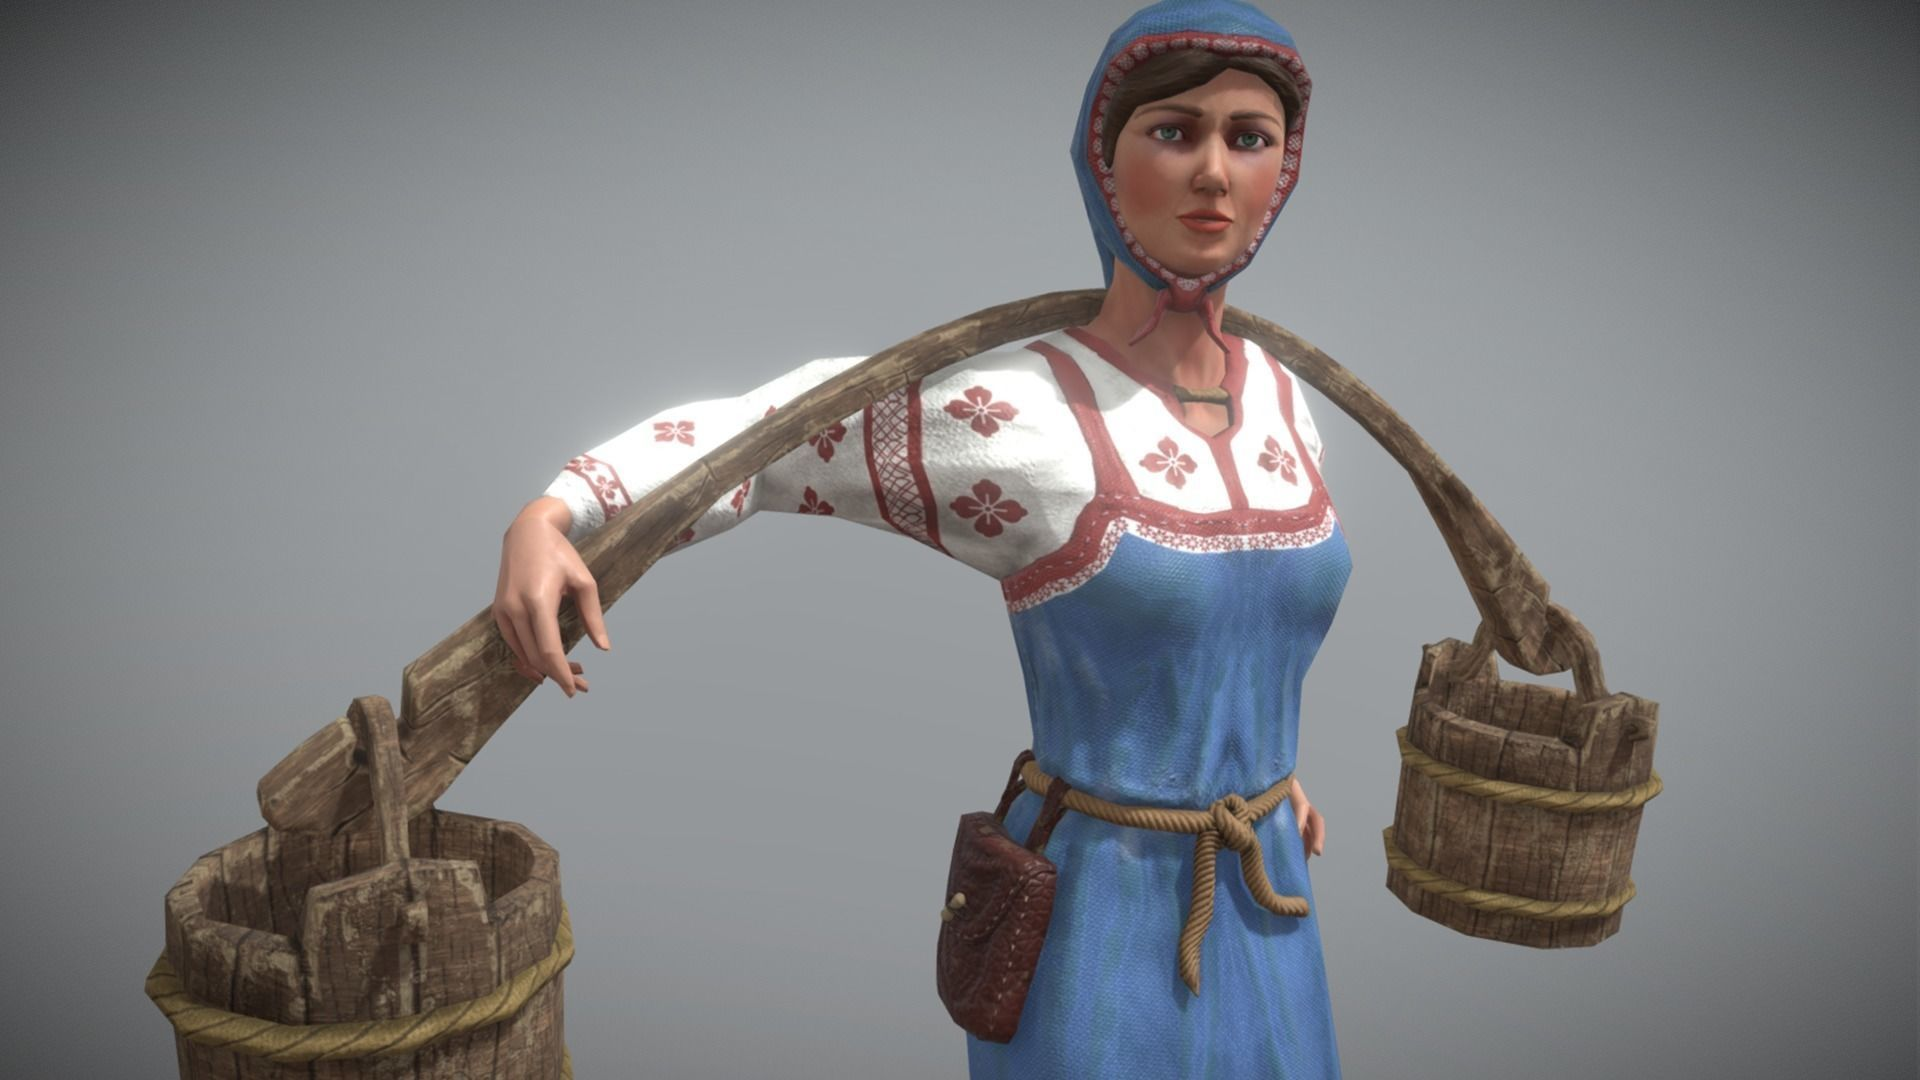 Peasant Villager Woman